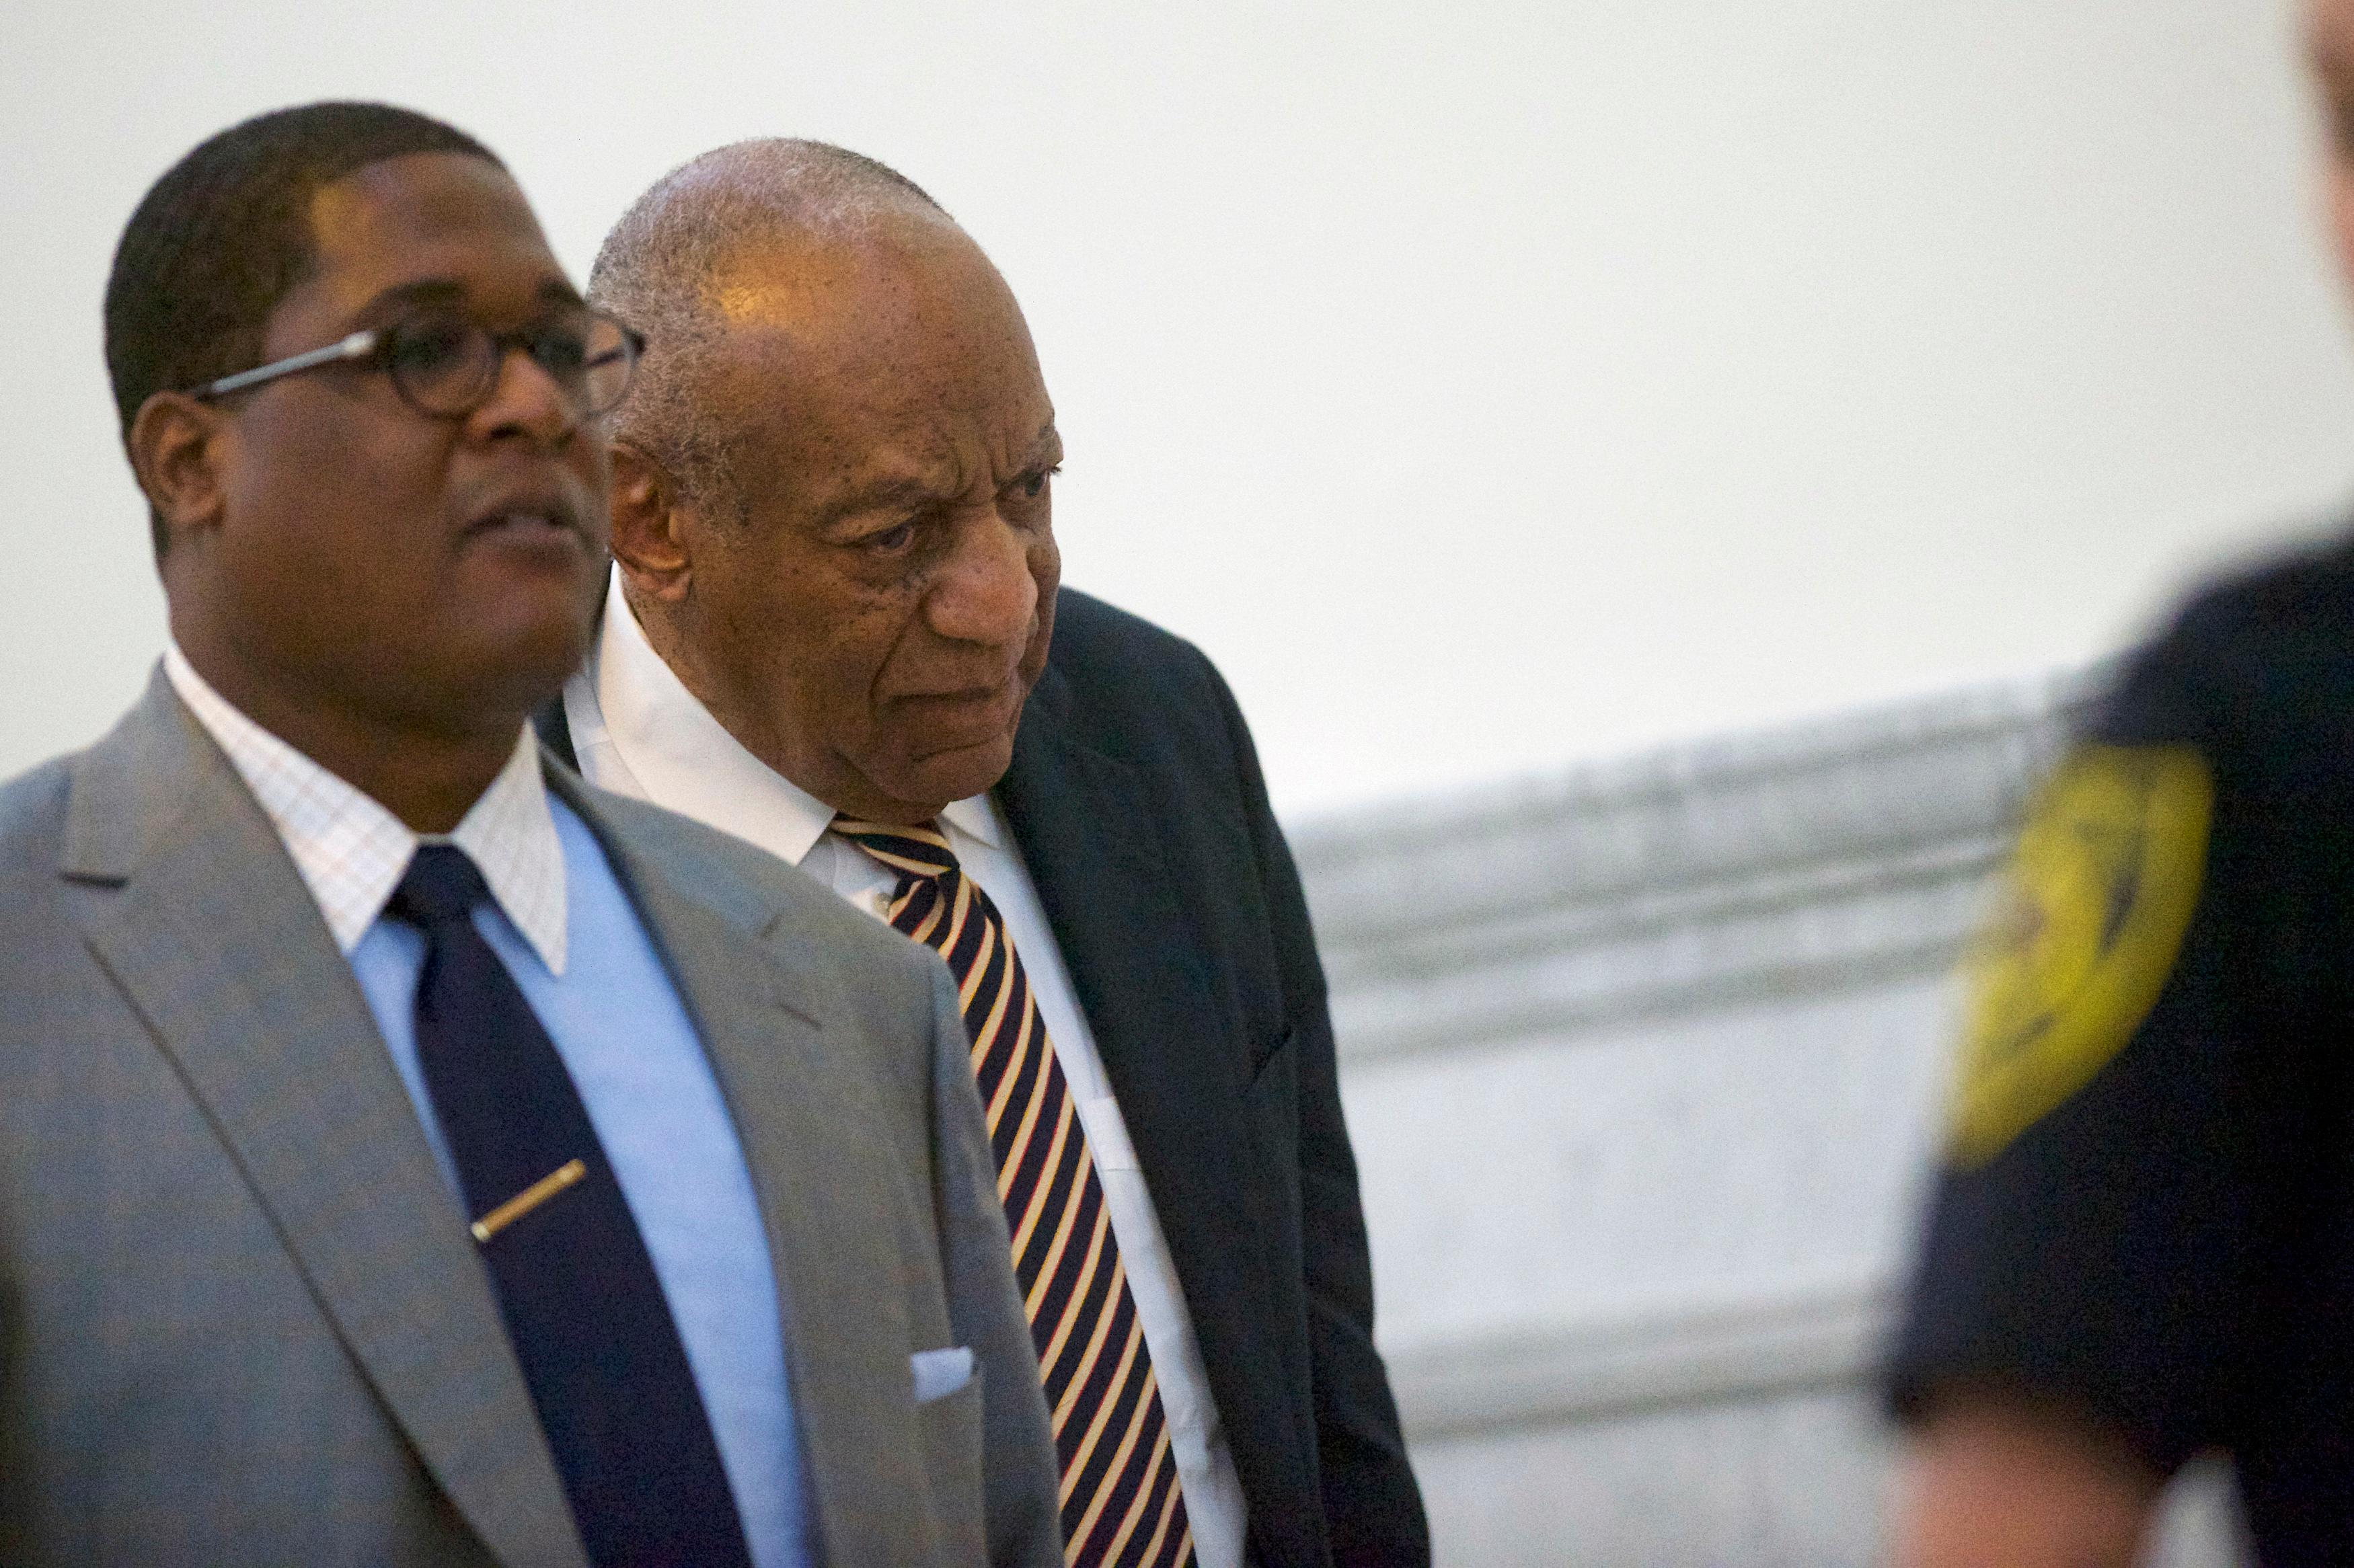 Bill Cosby exits the courtroom during his sexual assault trial at the Montgomery County Courthouse in Norristown, Pa., Wednesday, June 14, 2017.  (Mark Makela/Pool Photo via AP)